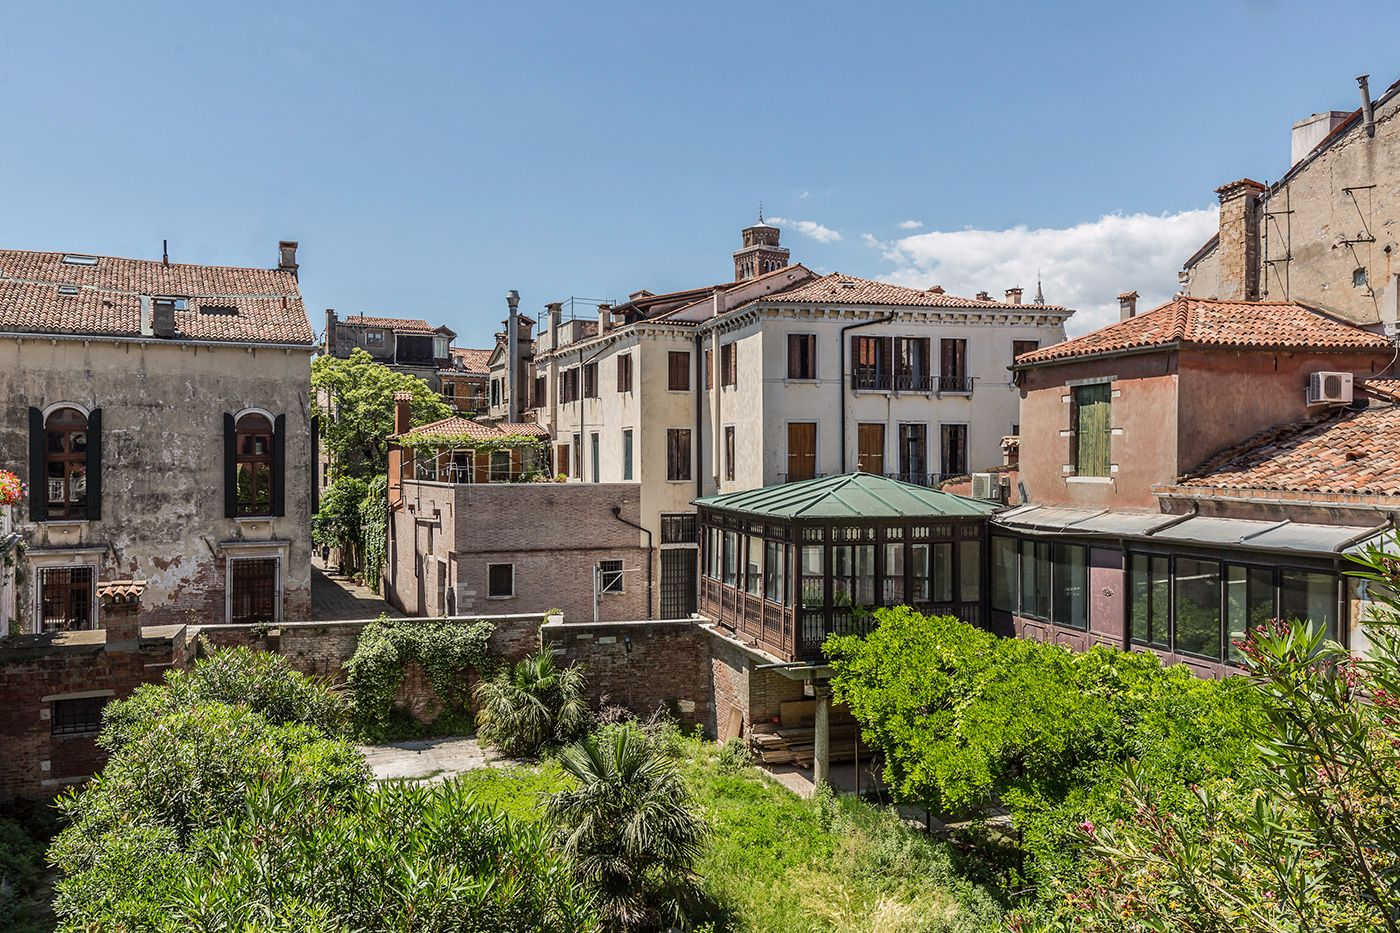 the view from the living room and bedrooms is truly Venetian and relaxing